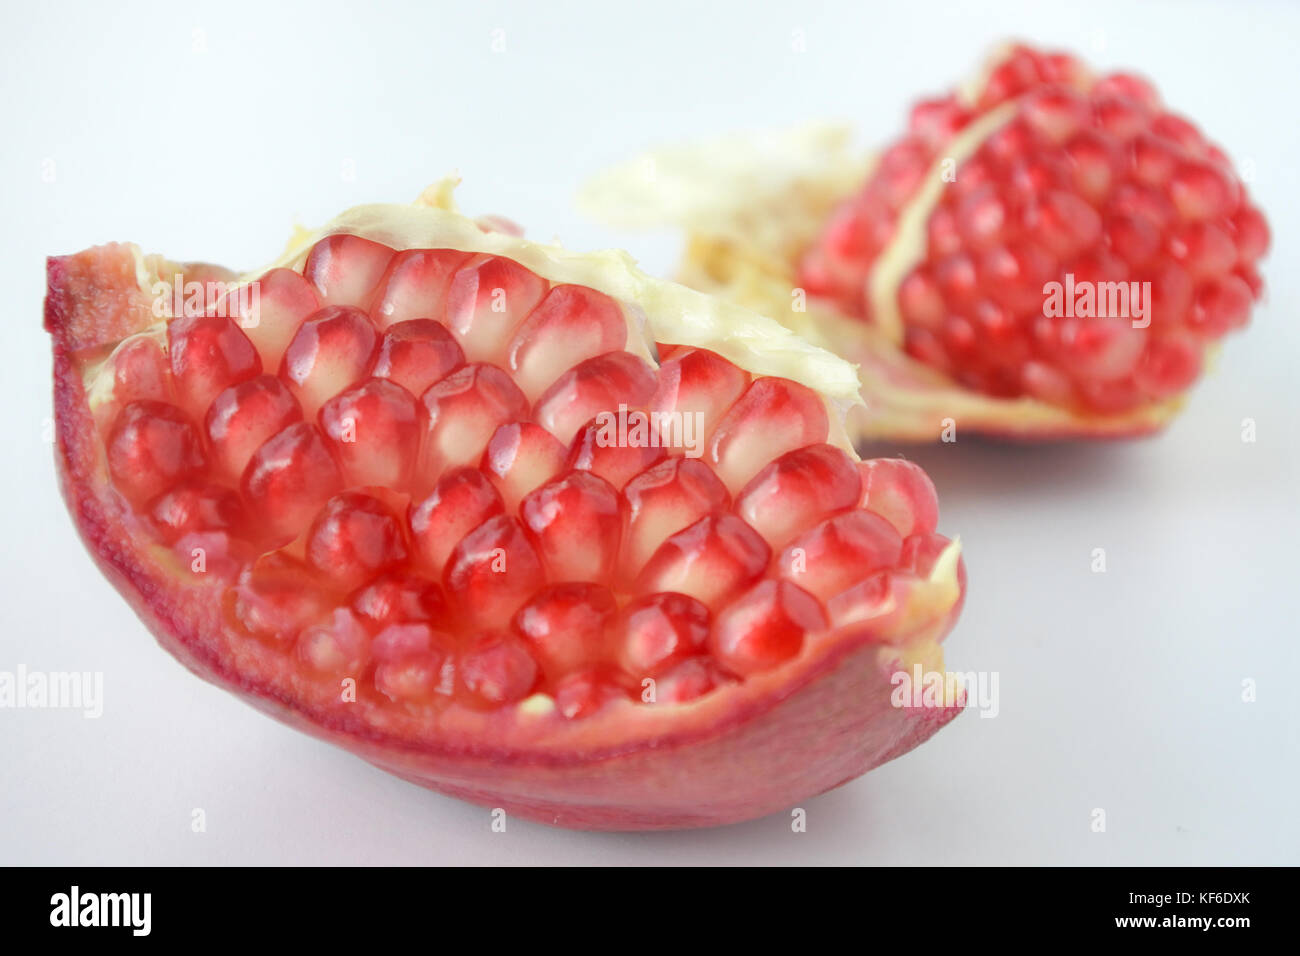 Pomegranate Fruit seeds. Food background and texture for the Jewish festival of Sukkot (Feast of Tabernacles) in - Stock Image